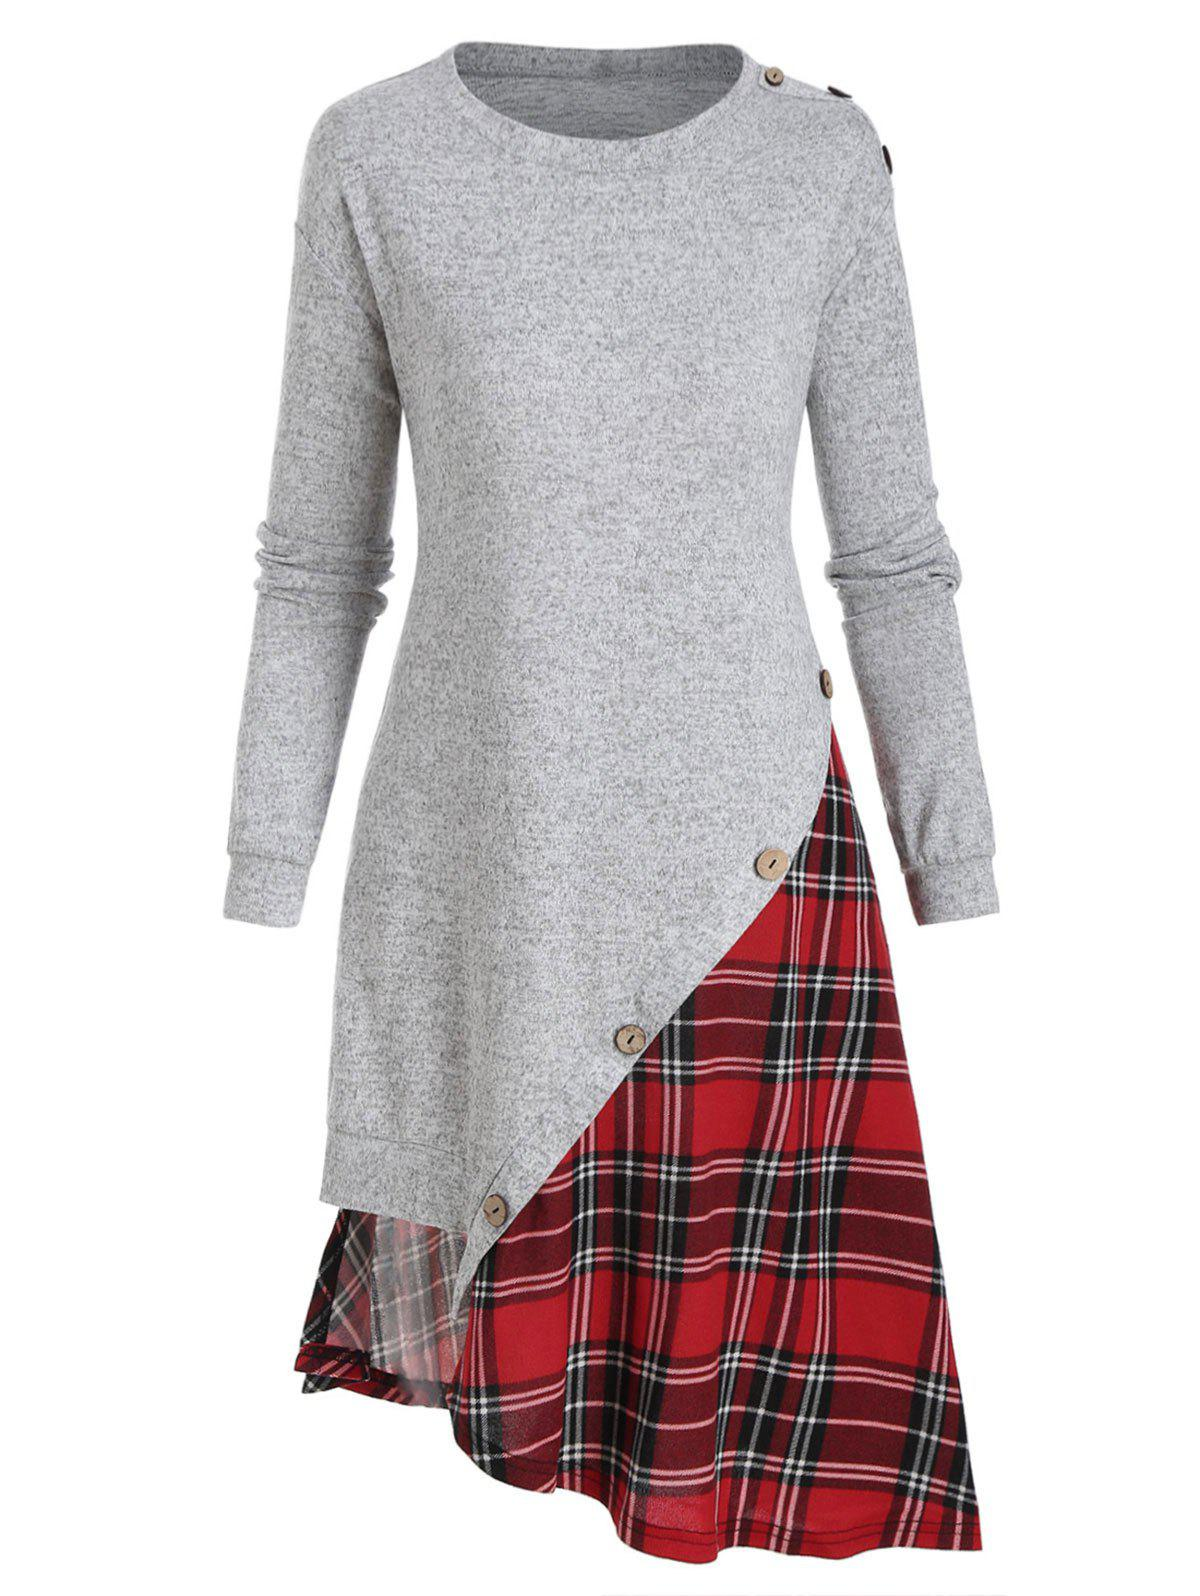 Plaid Panel Buttons Irregular Sweatshirt Dress - LIGHT GRAY 3XL